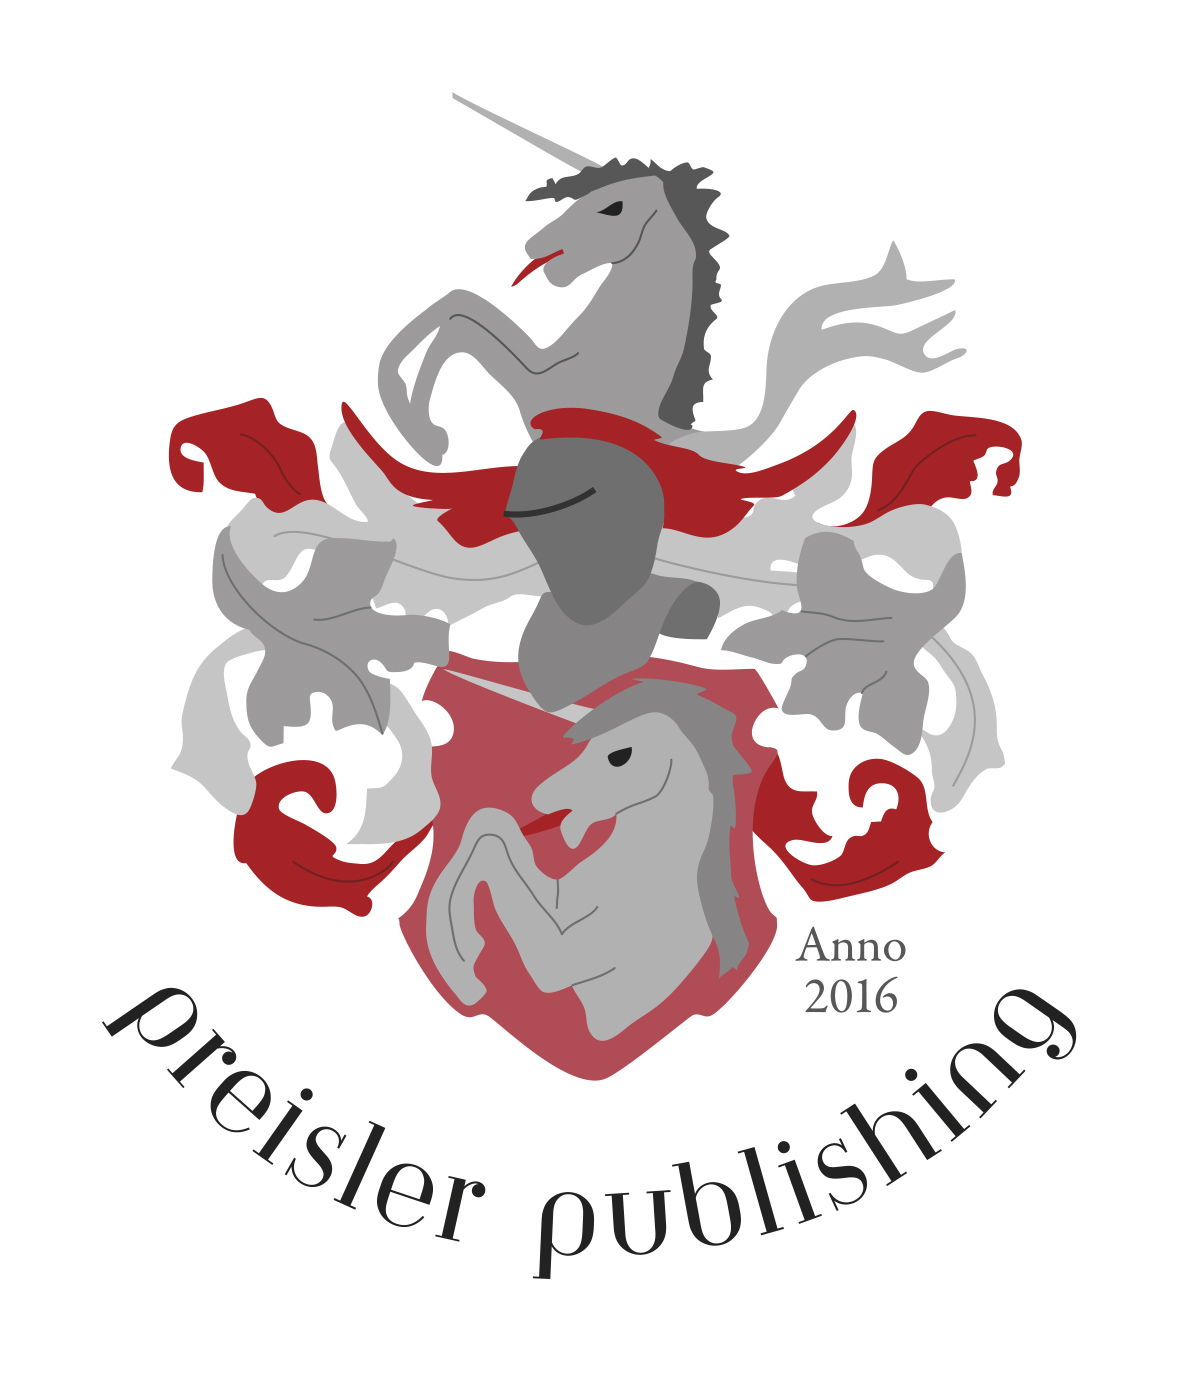 Logodesign, Preisler Publishing